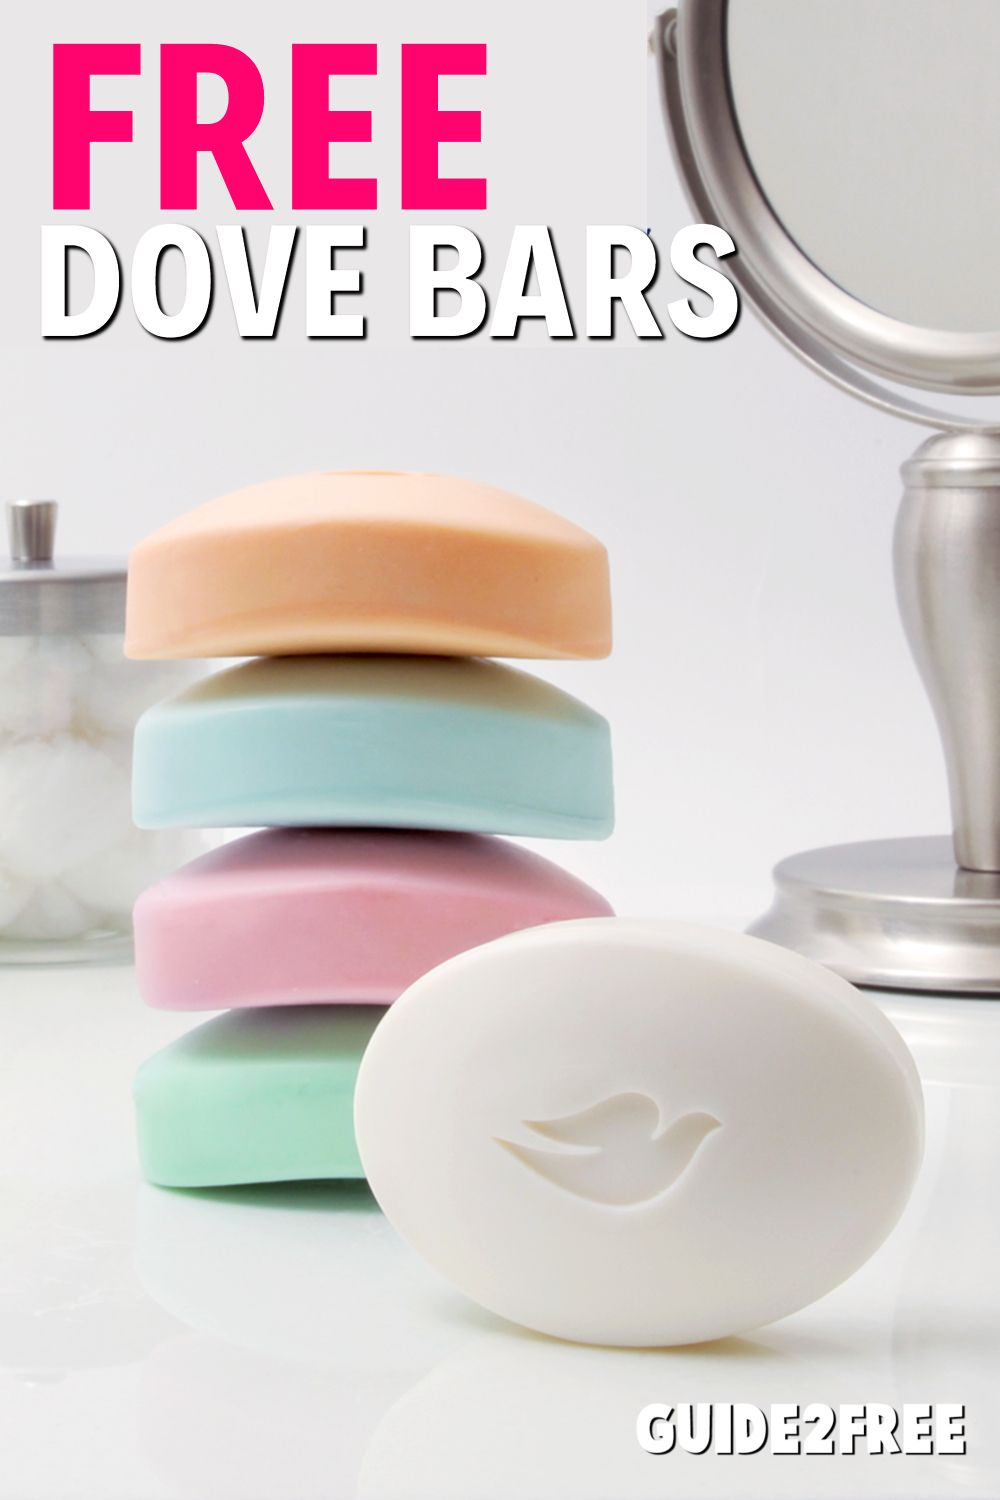 FREE Dove Beauty Bars in 2020 (With images) Dove beauty